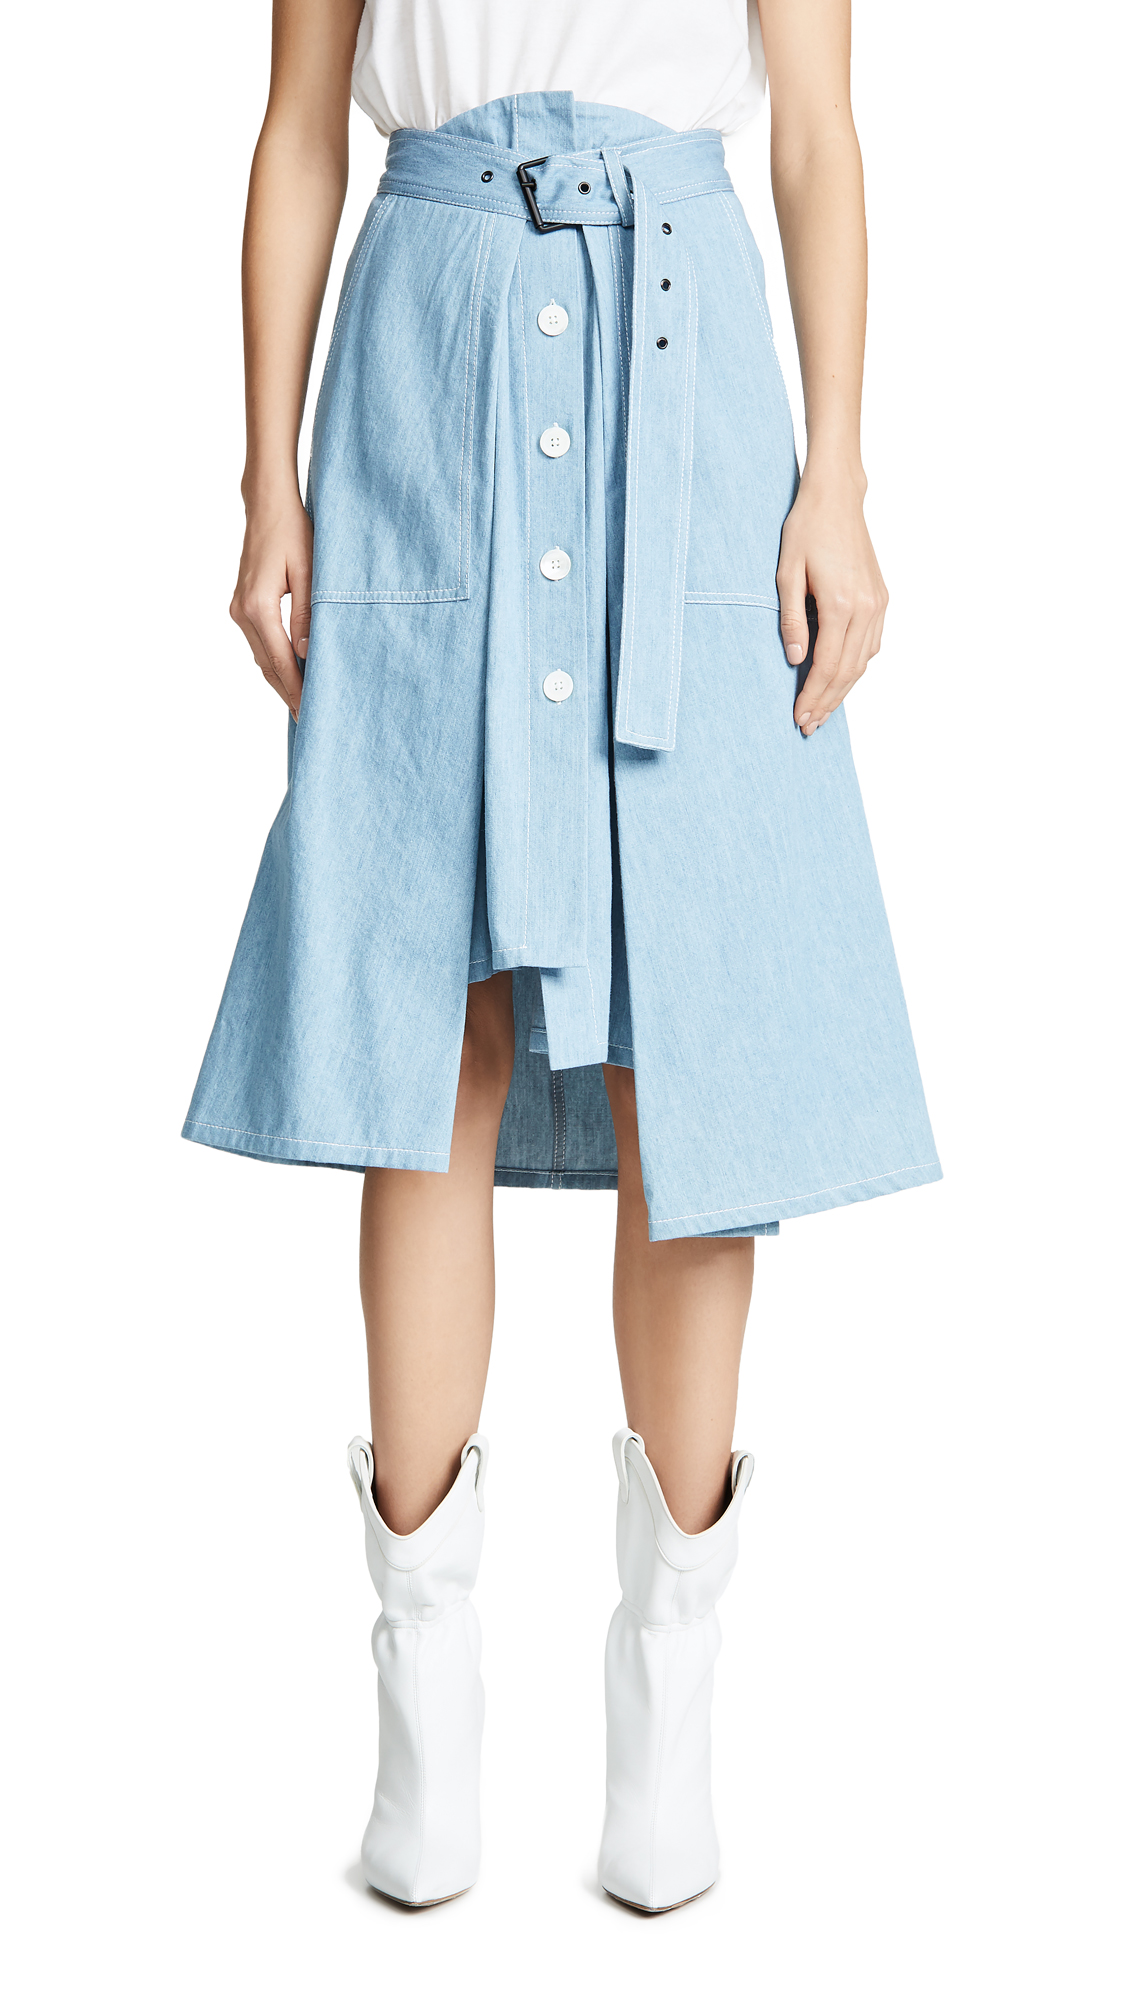 COLOVOS Tie Front Skirt in Light Blue